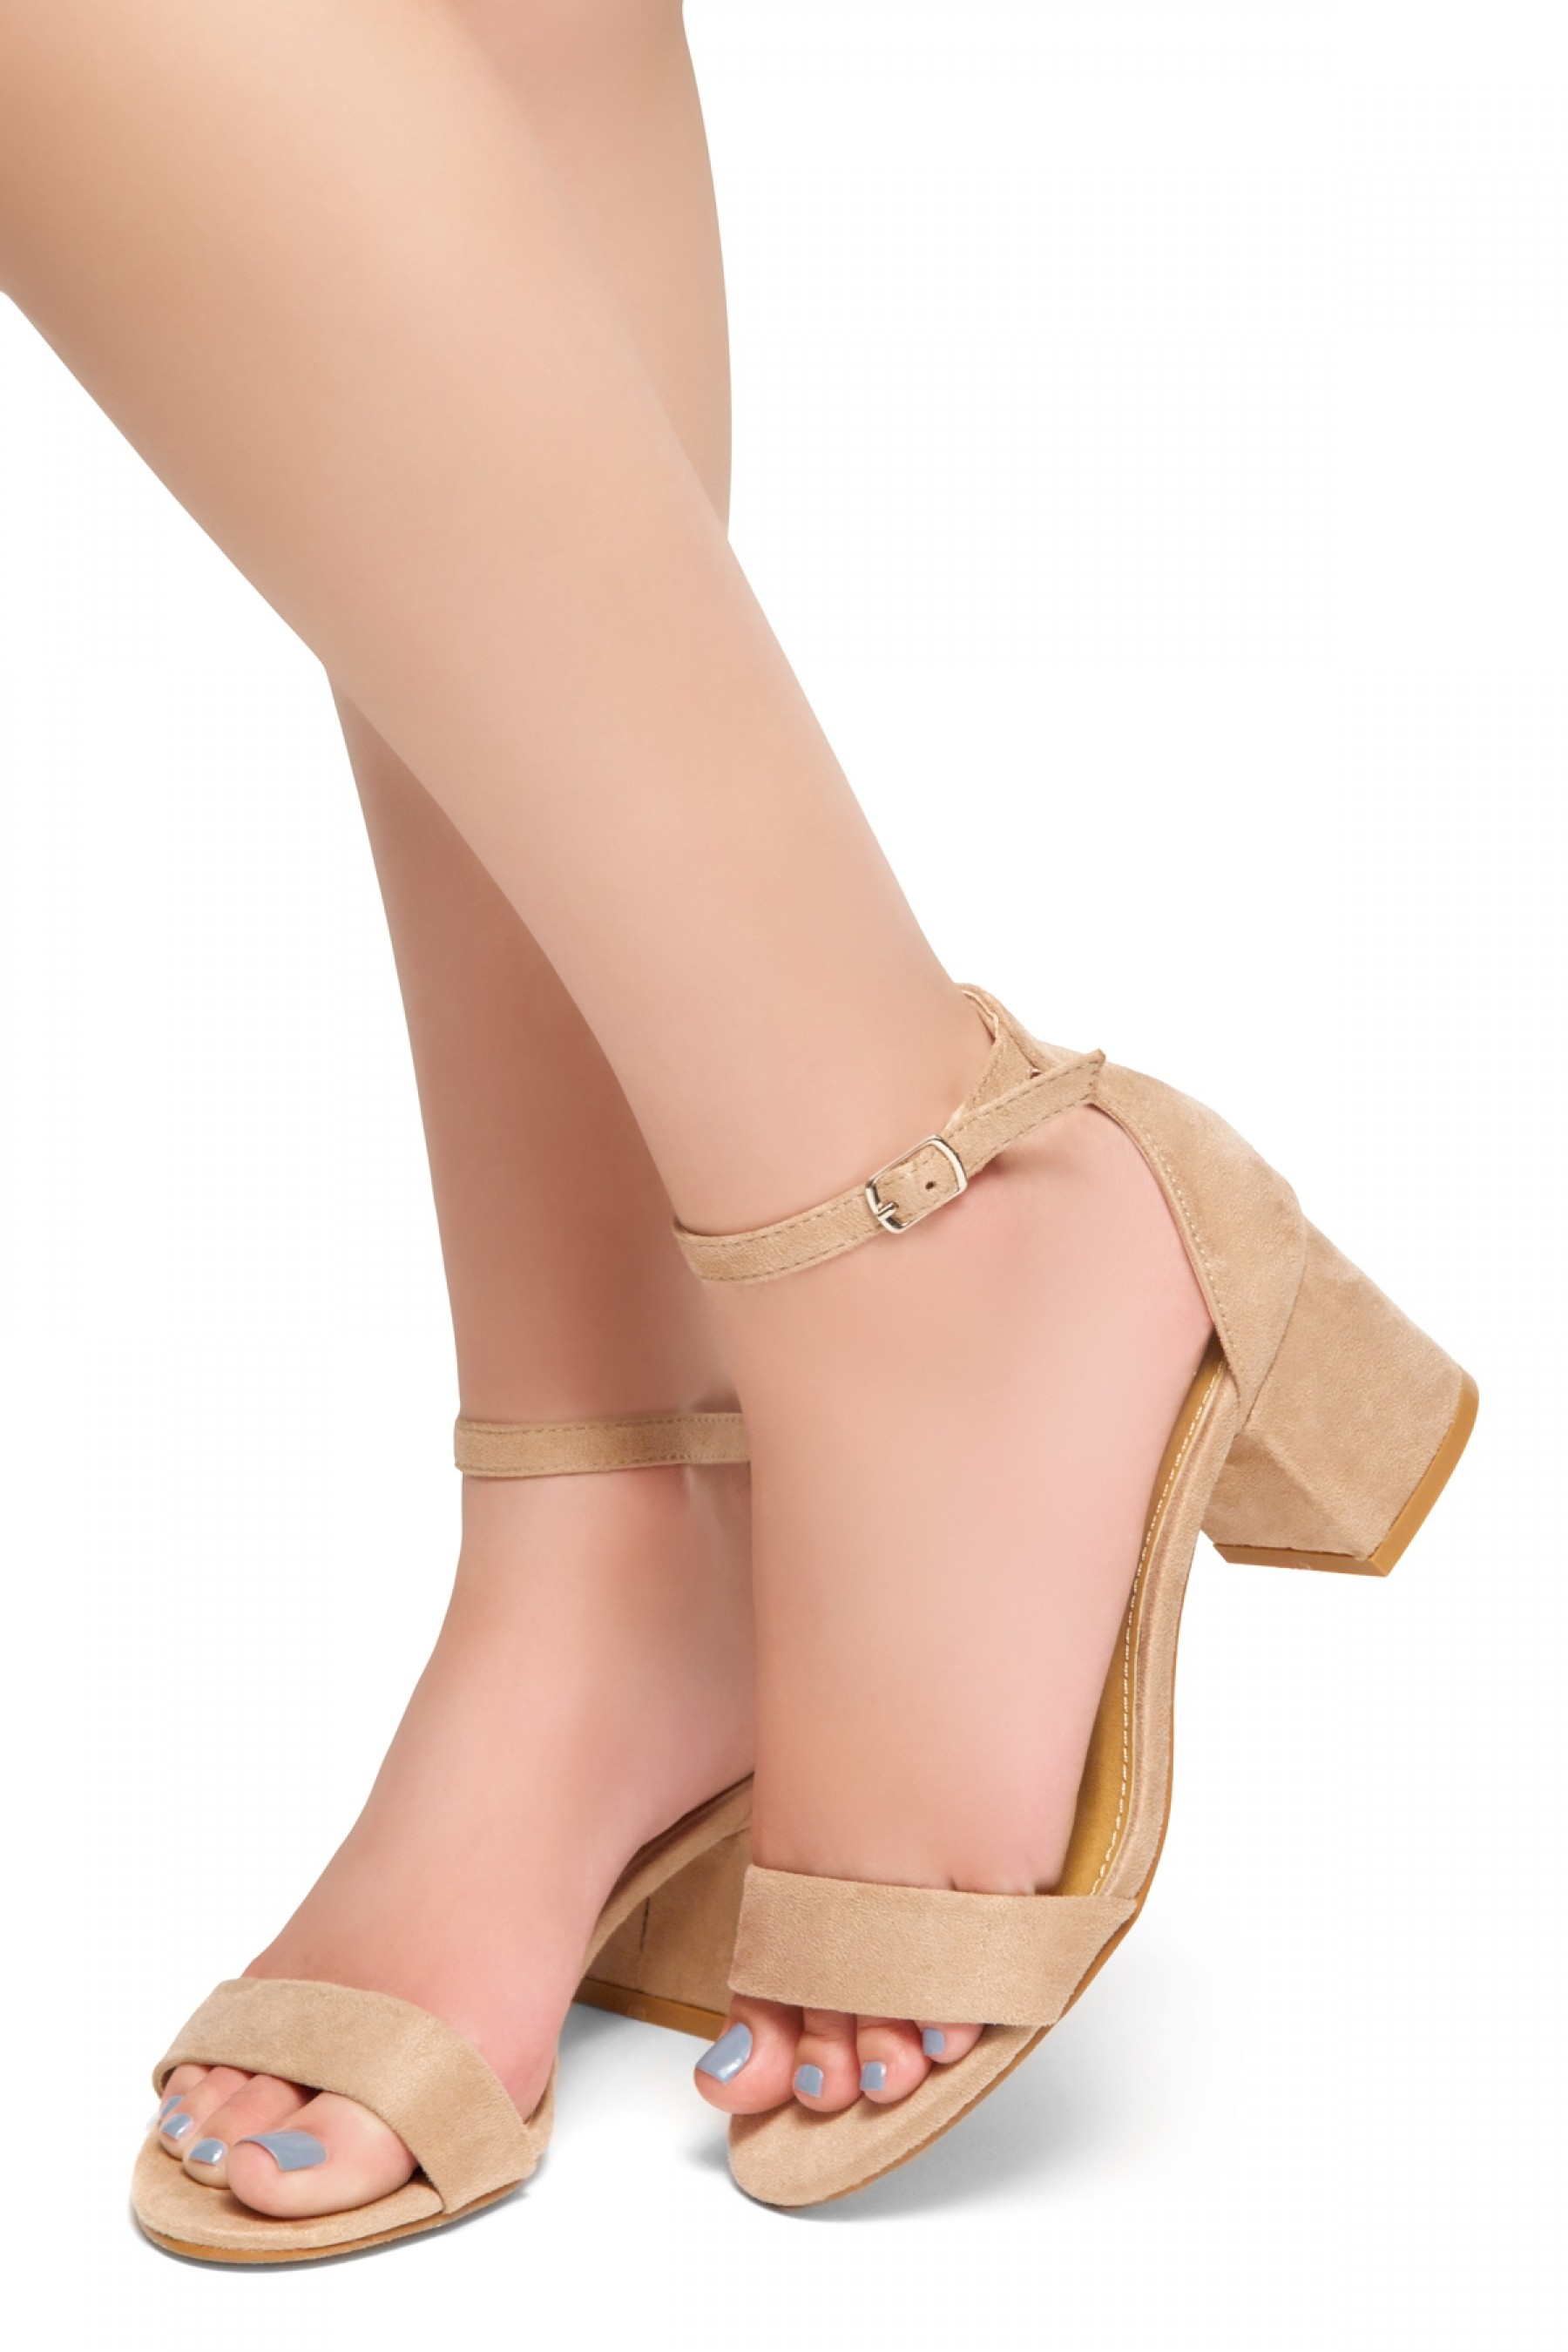 HerStyle Mischa - an open toe, block heel,ankle strap with an adjustable buckle (Blush)